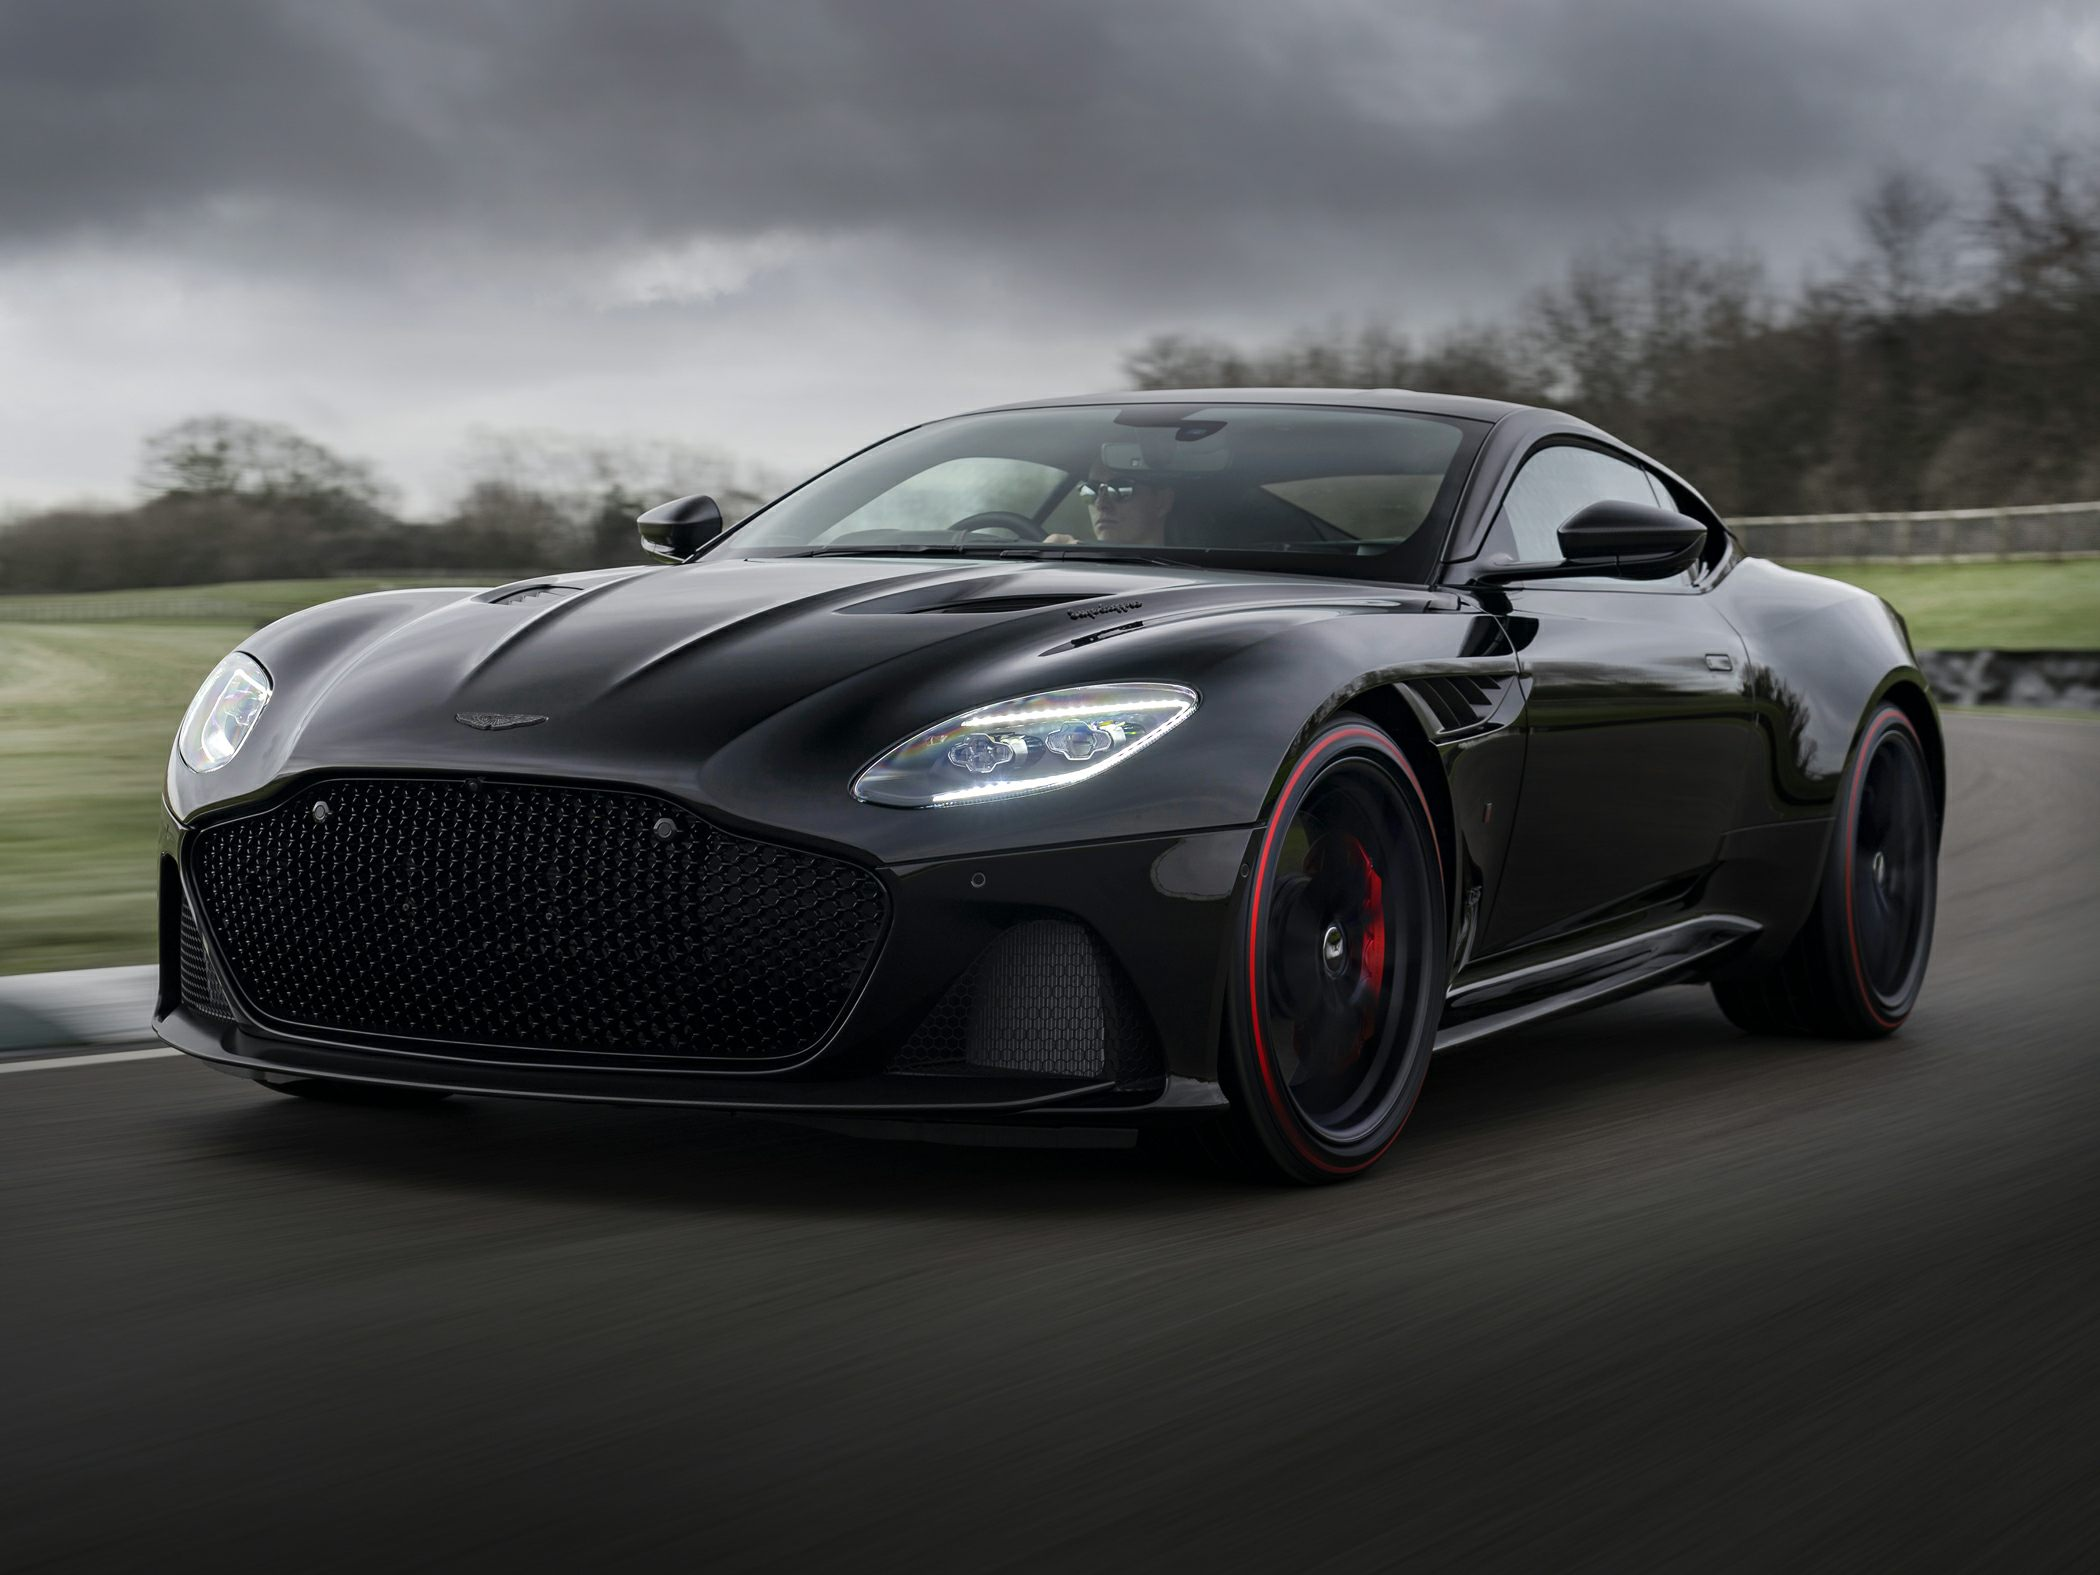 2019 Aston Martin Dbs Superleggera Tag Heuer Edition 2dr Coupe Specs And Prices